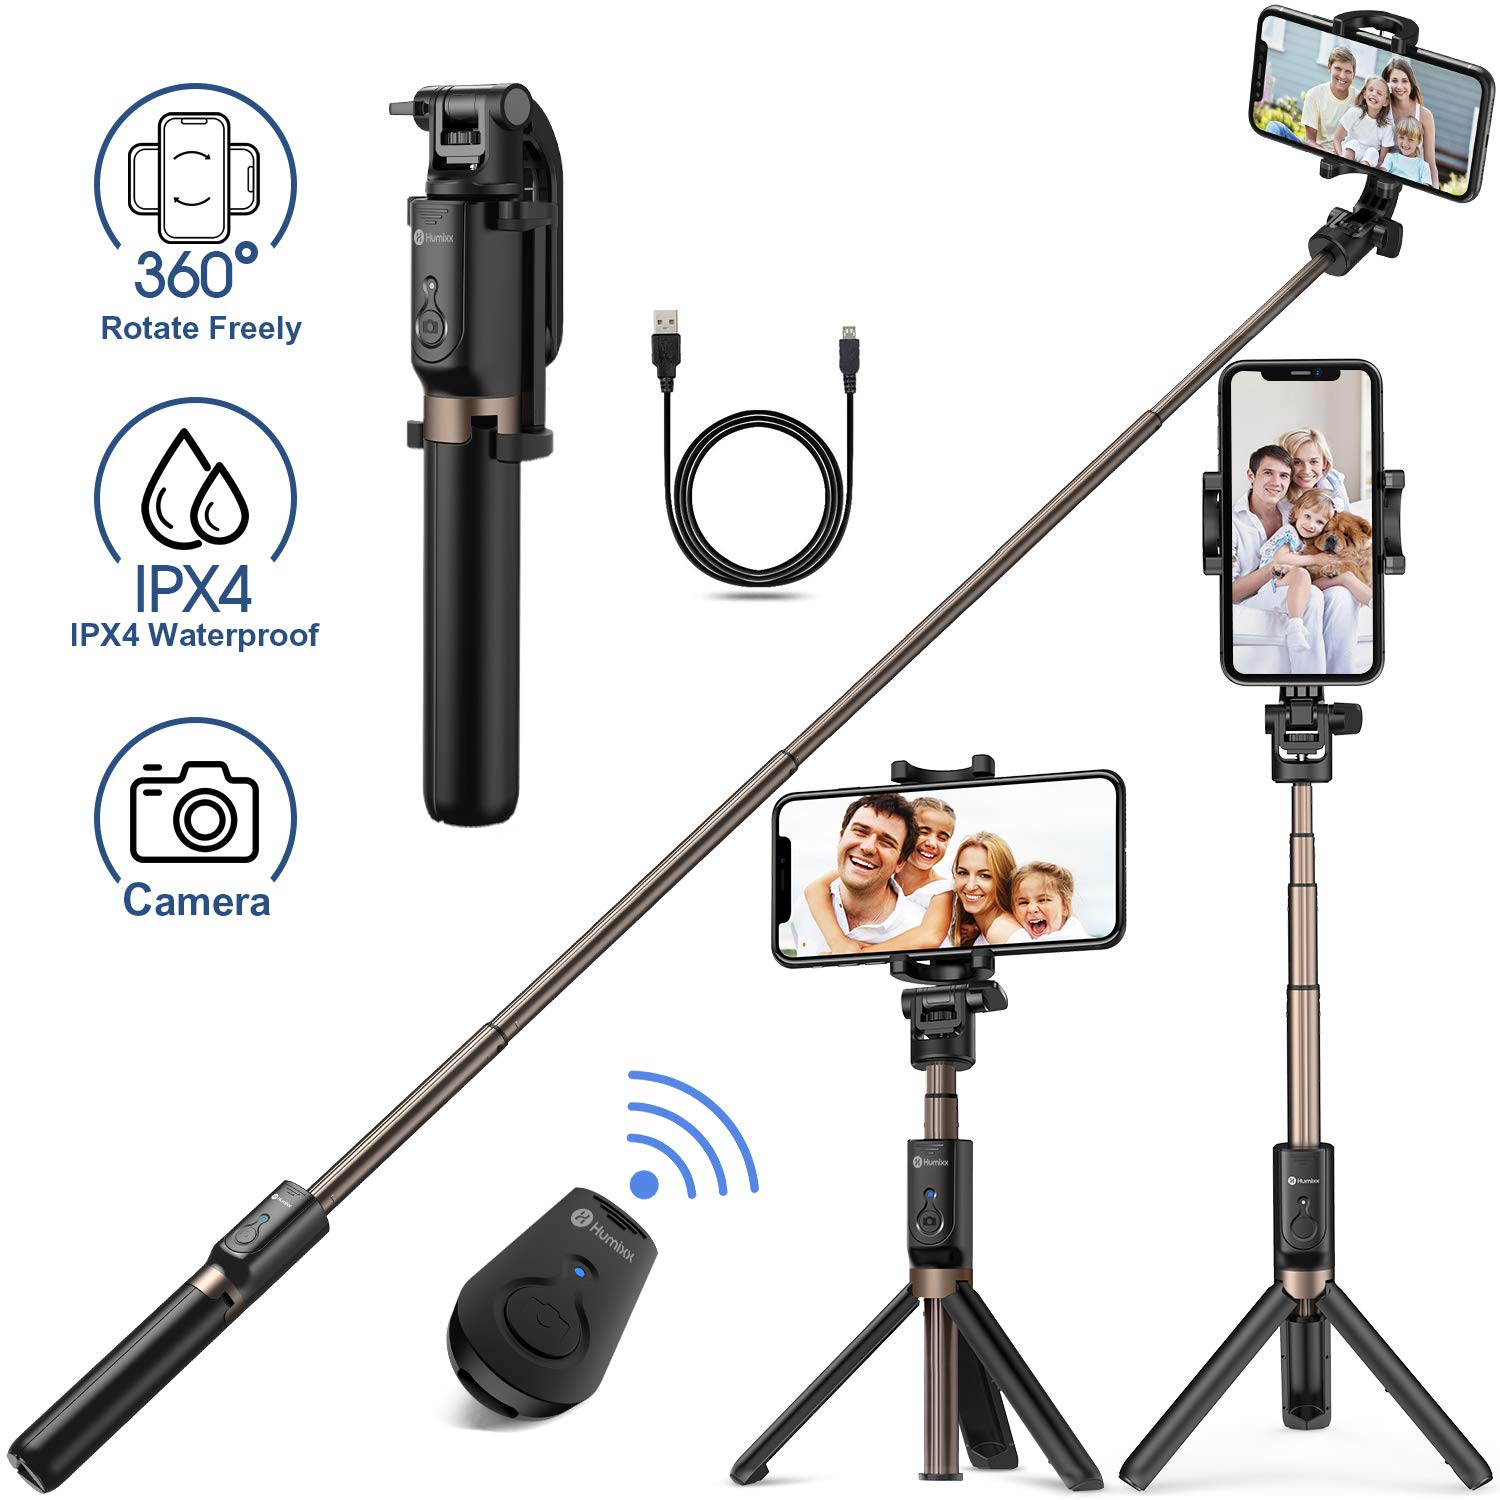 Humixx Selfie Stick, Buletooth 4-in-1 Extendable Selfie Stick Tripod 360° Rotation, Rechargeable Wireless Remote Shutter Compatible with iPhone XR/XS Max, Samsung S10+, Huawei P30, Go Pro and Cameras by Humixx (Image #1)